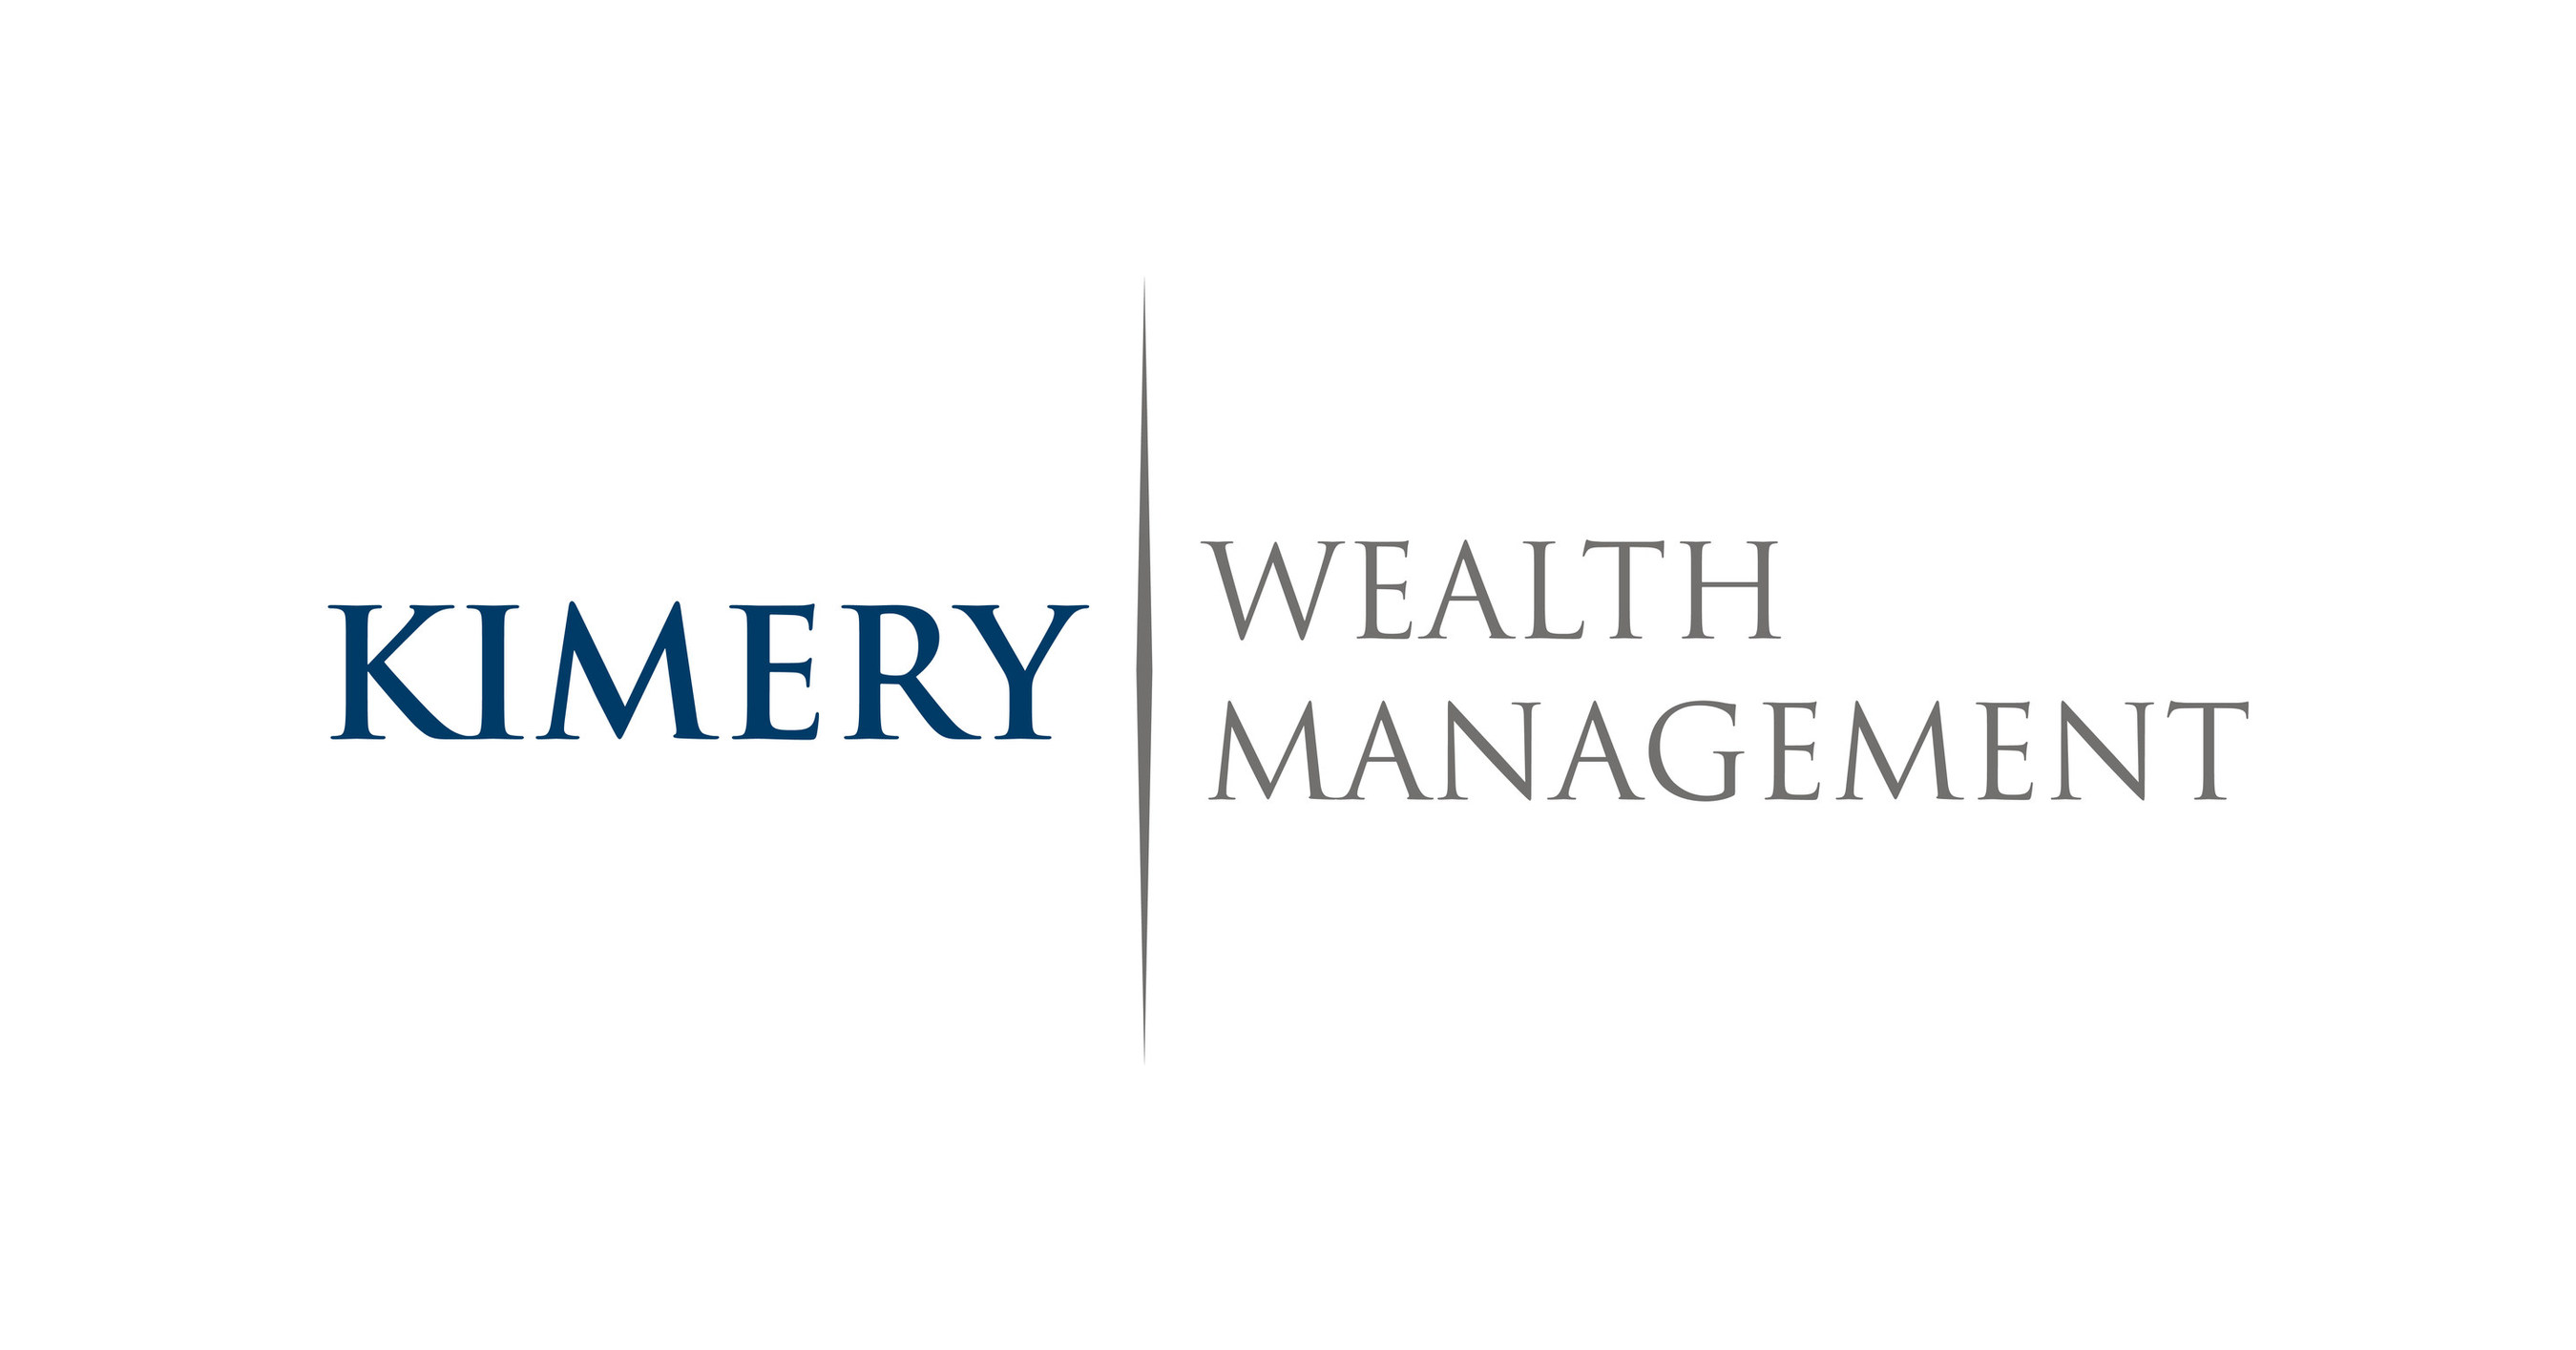 Holistic wealth management wealth financial advisory services llc - Kimery Wealth Management Launches As Privately Owned Independent Financial Advisory Firm